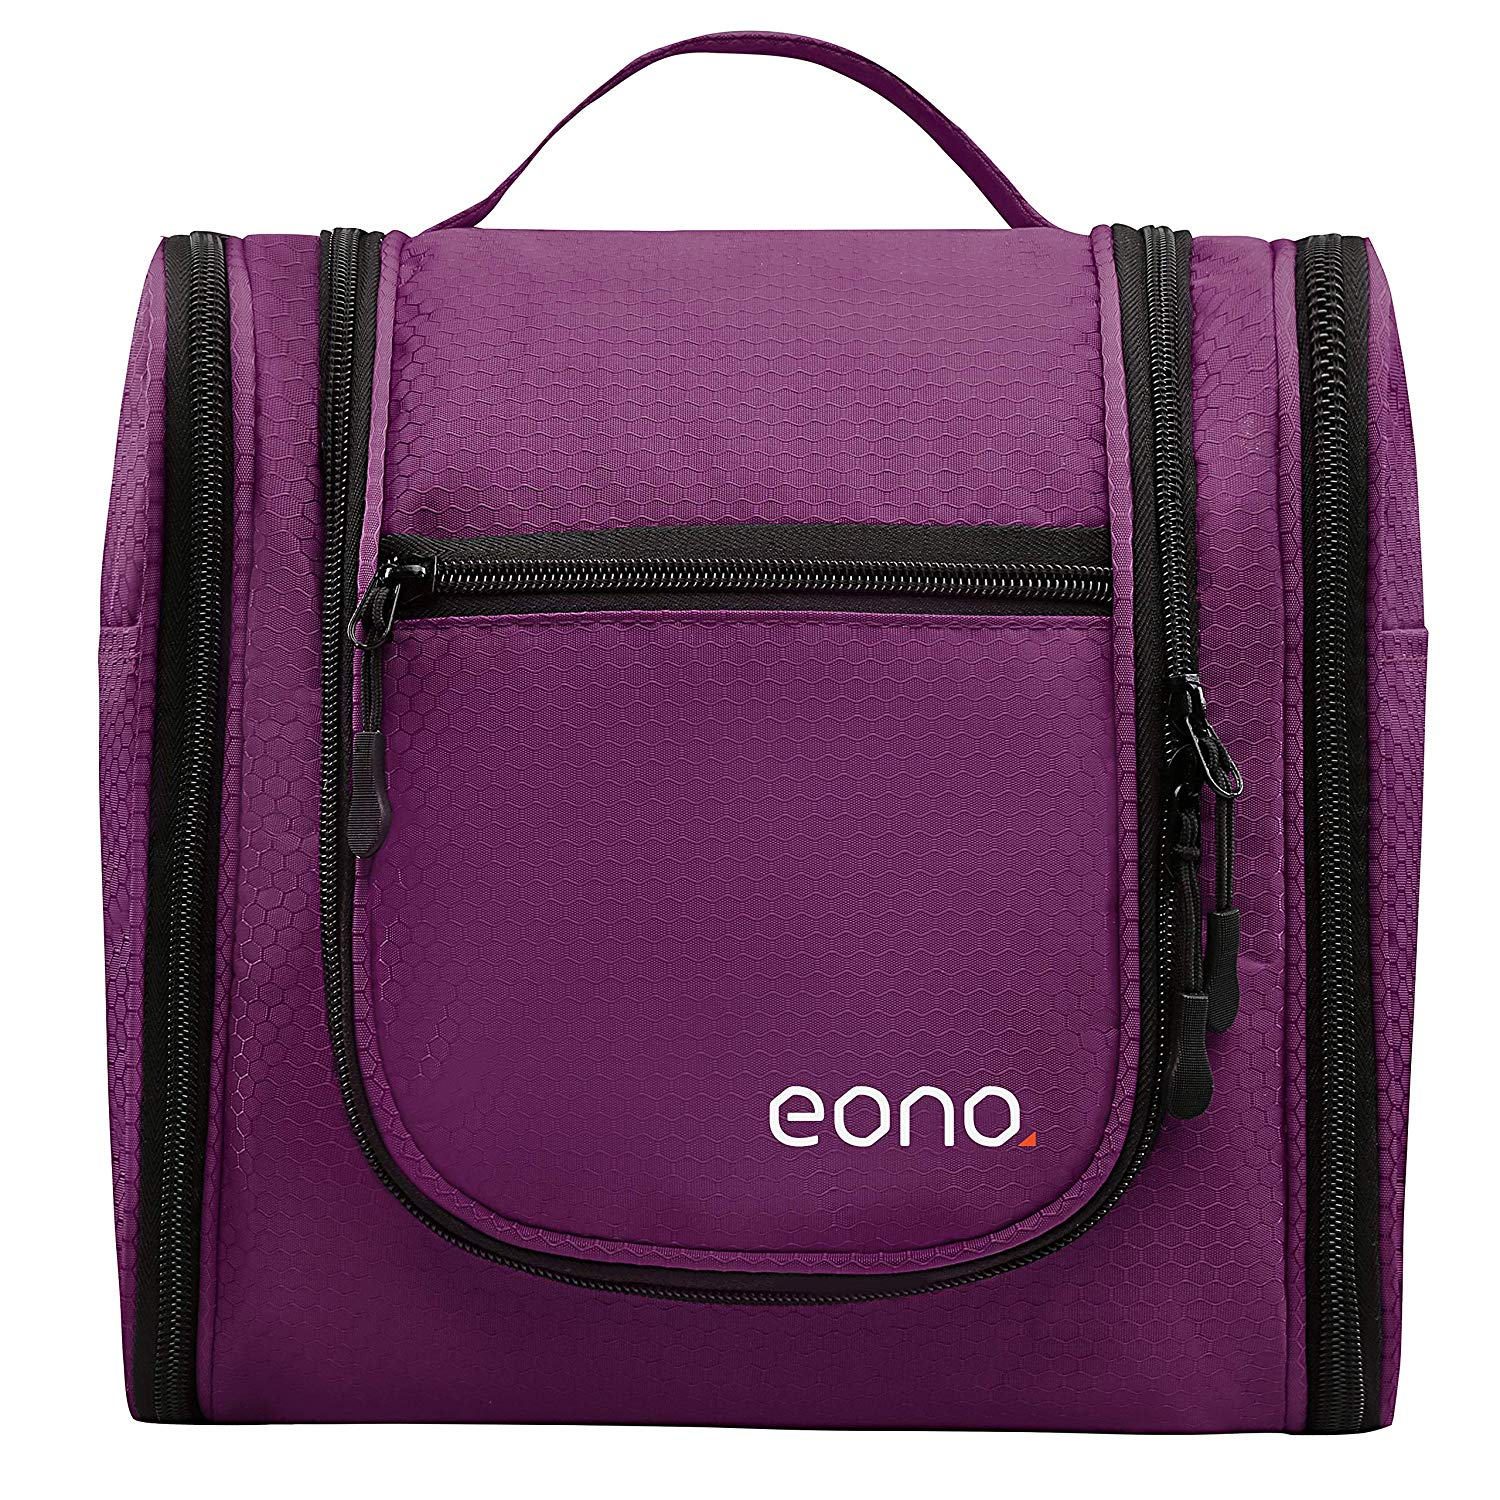 Eono Essentials Large Men & Women Toiletry Bag for Makeup, Cosmetic, Shaving, Travel Accessories, Personal Items - Hanging Toiletries Kit Makeup Organizer Purple